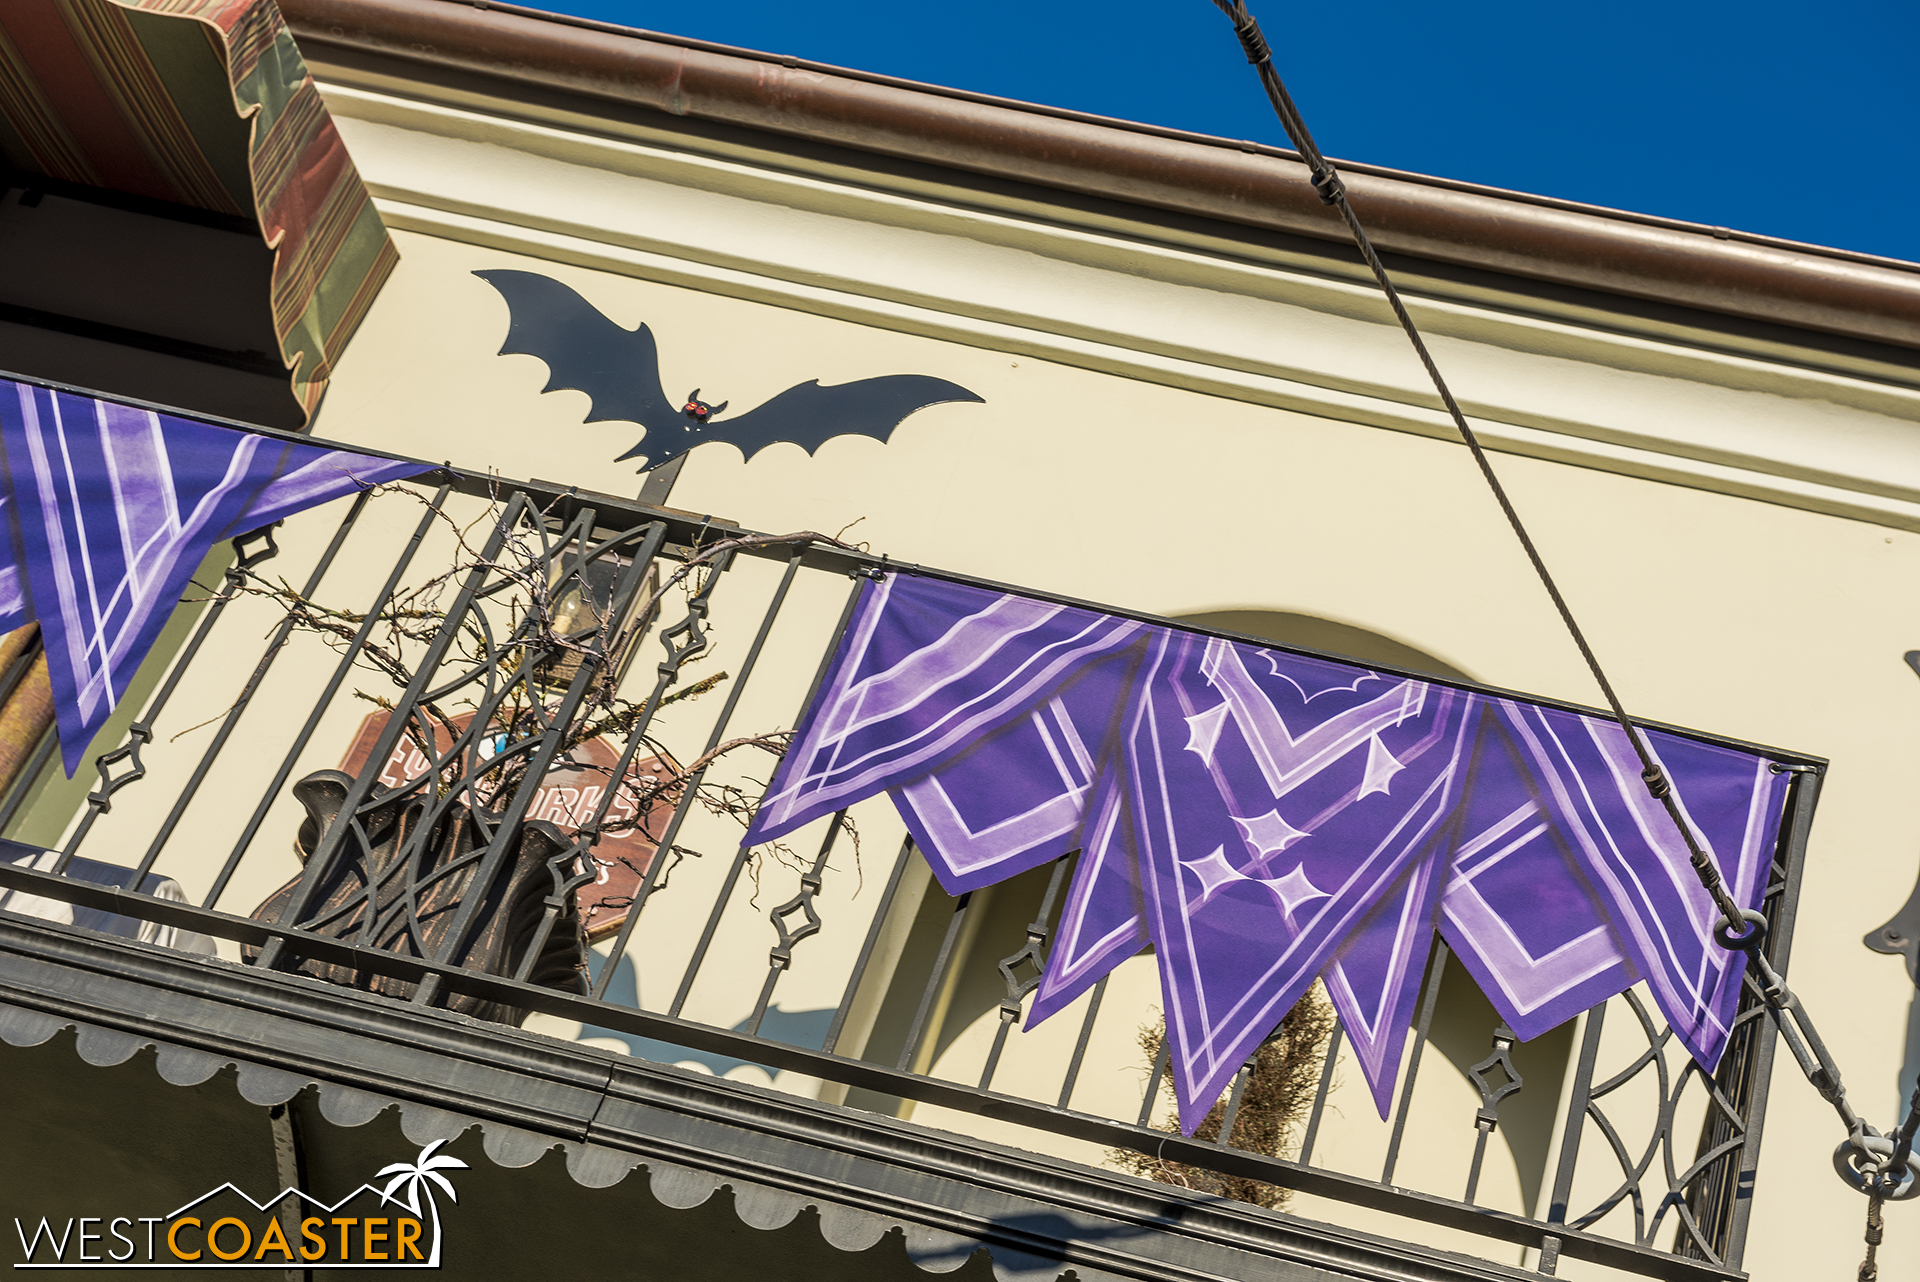 There are bats and purple banners and bunting everywhere.